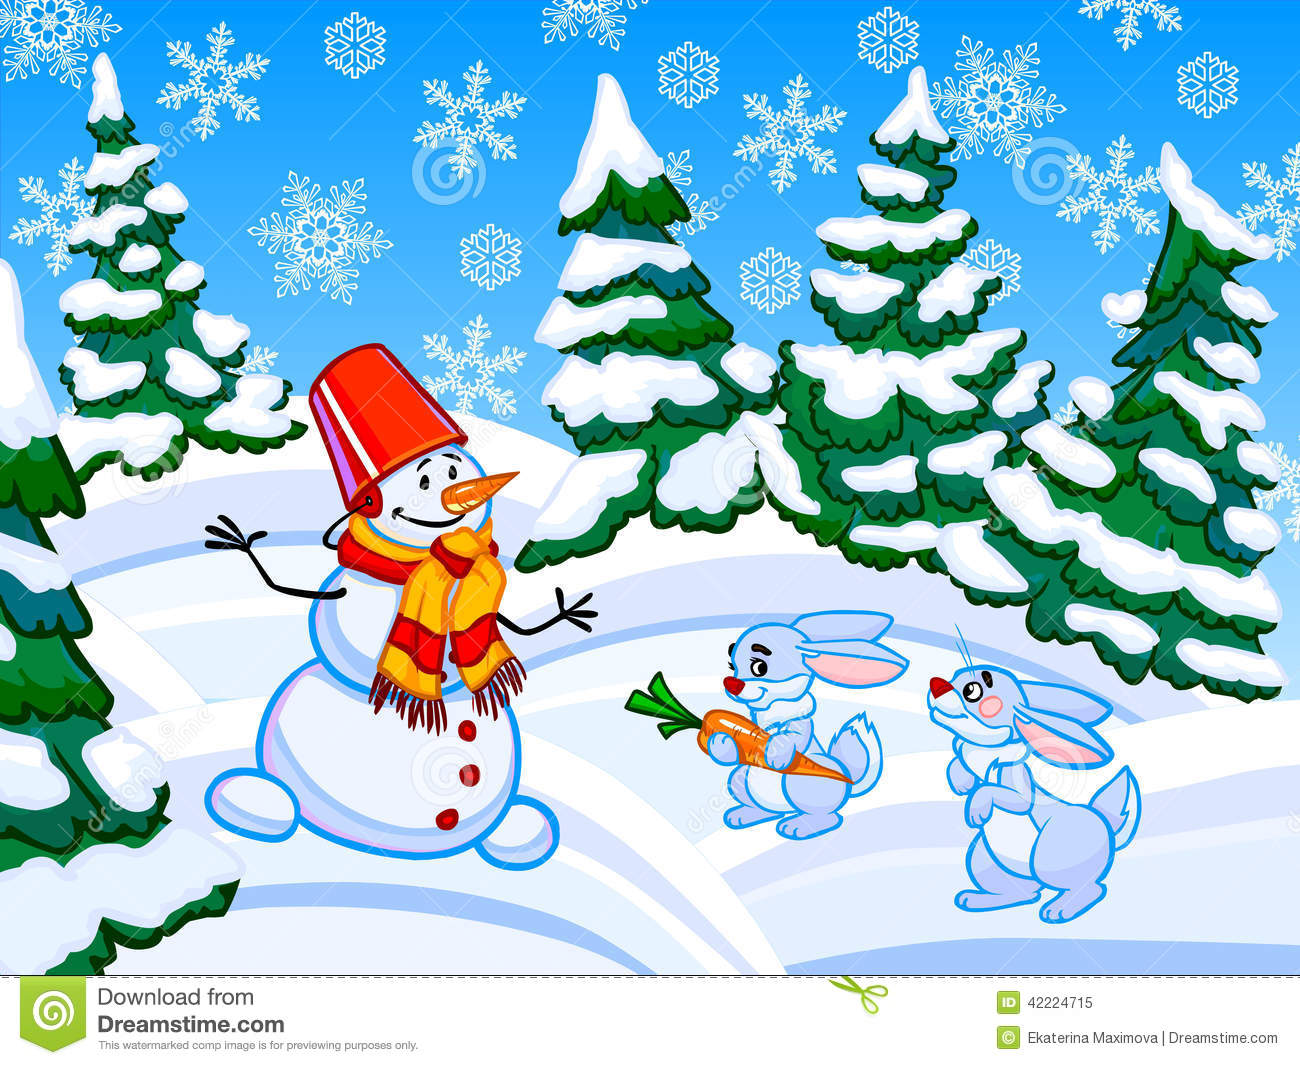 The Cartoon Coniferous Snowy Forest With A Snowman And Two